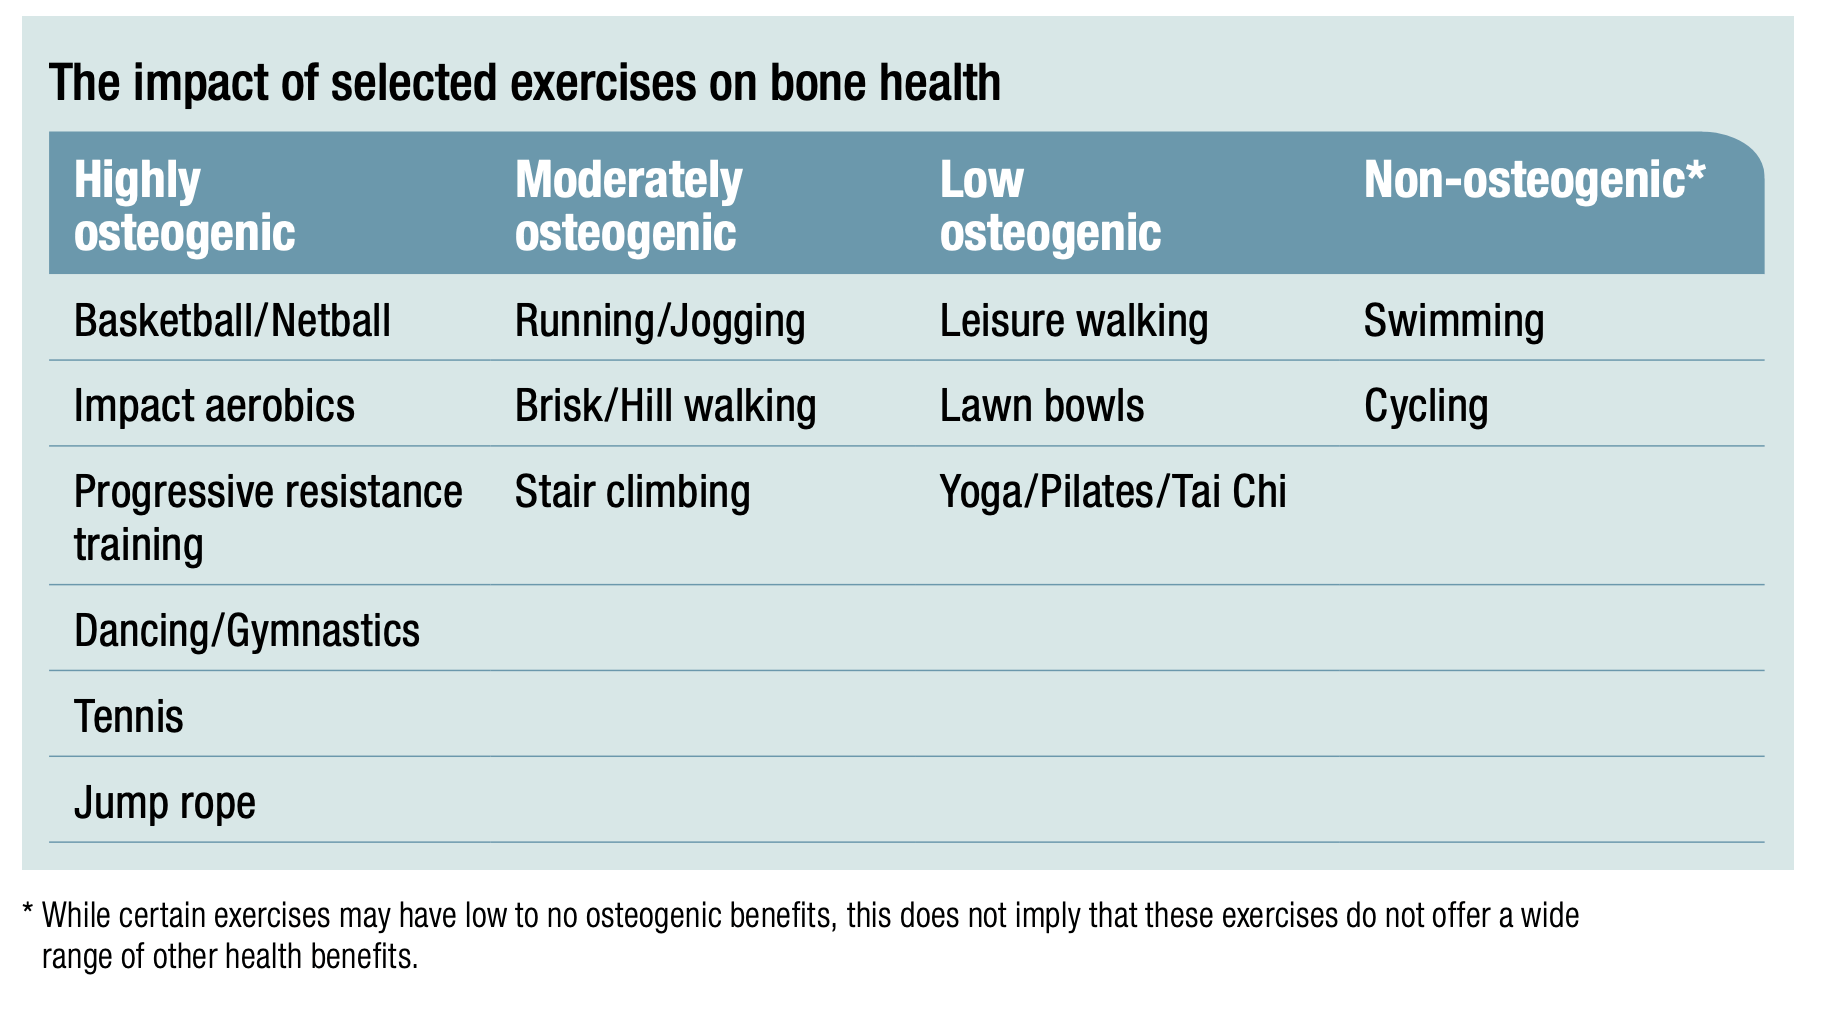 table comparison of different exercise types and their impact on bone health